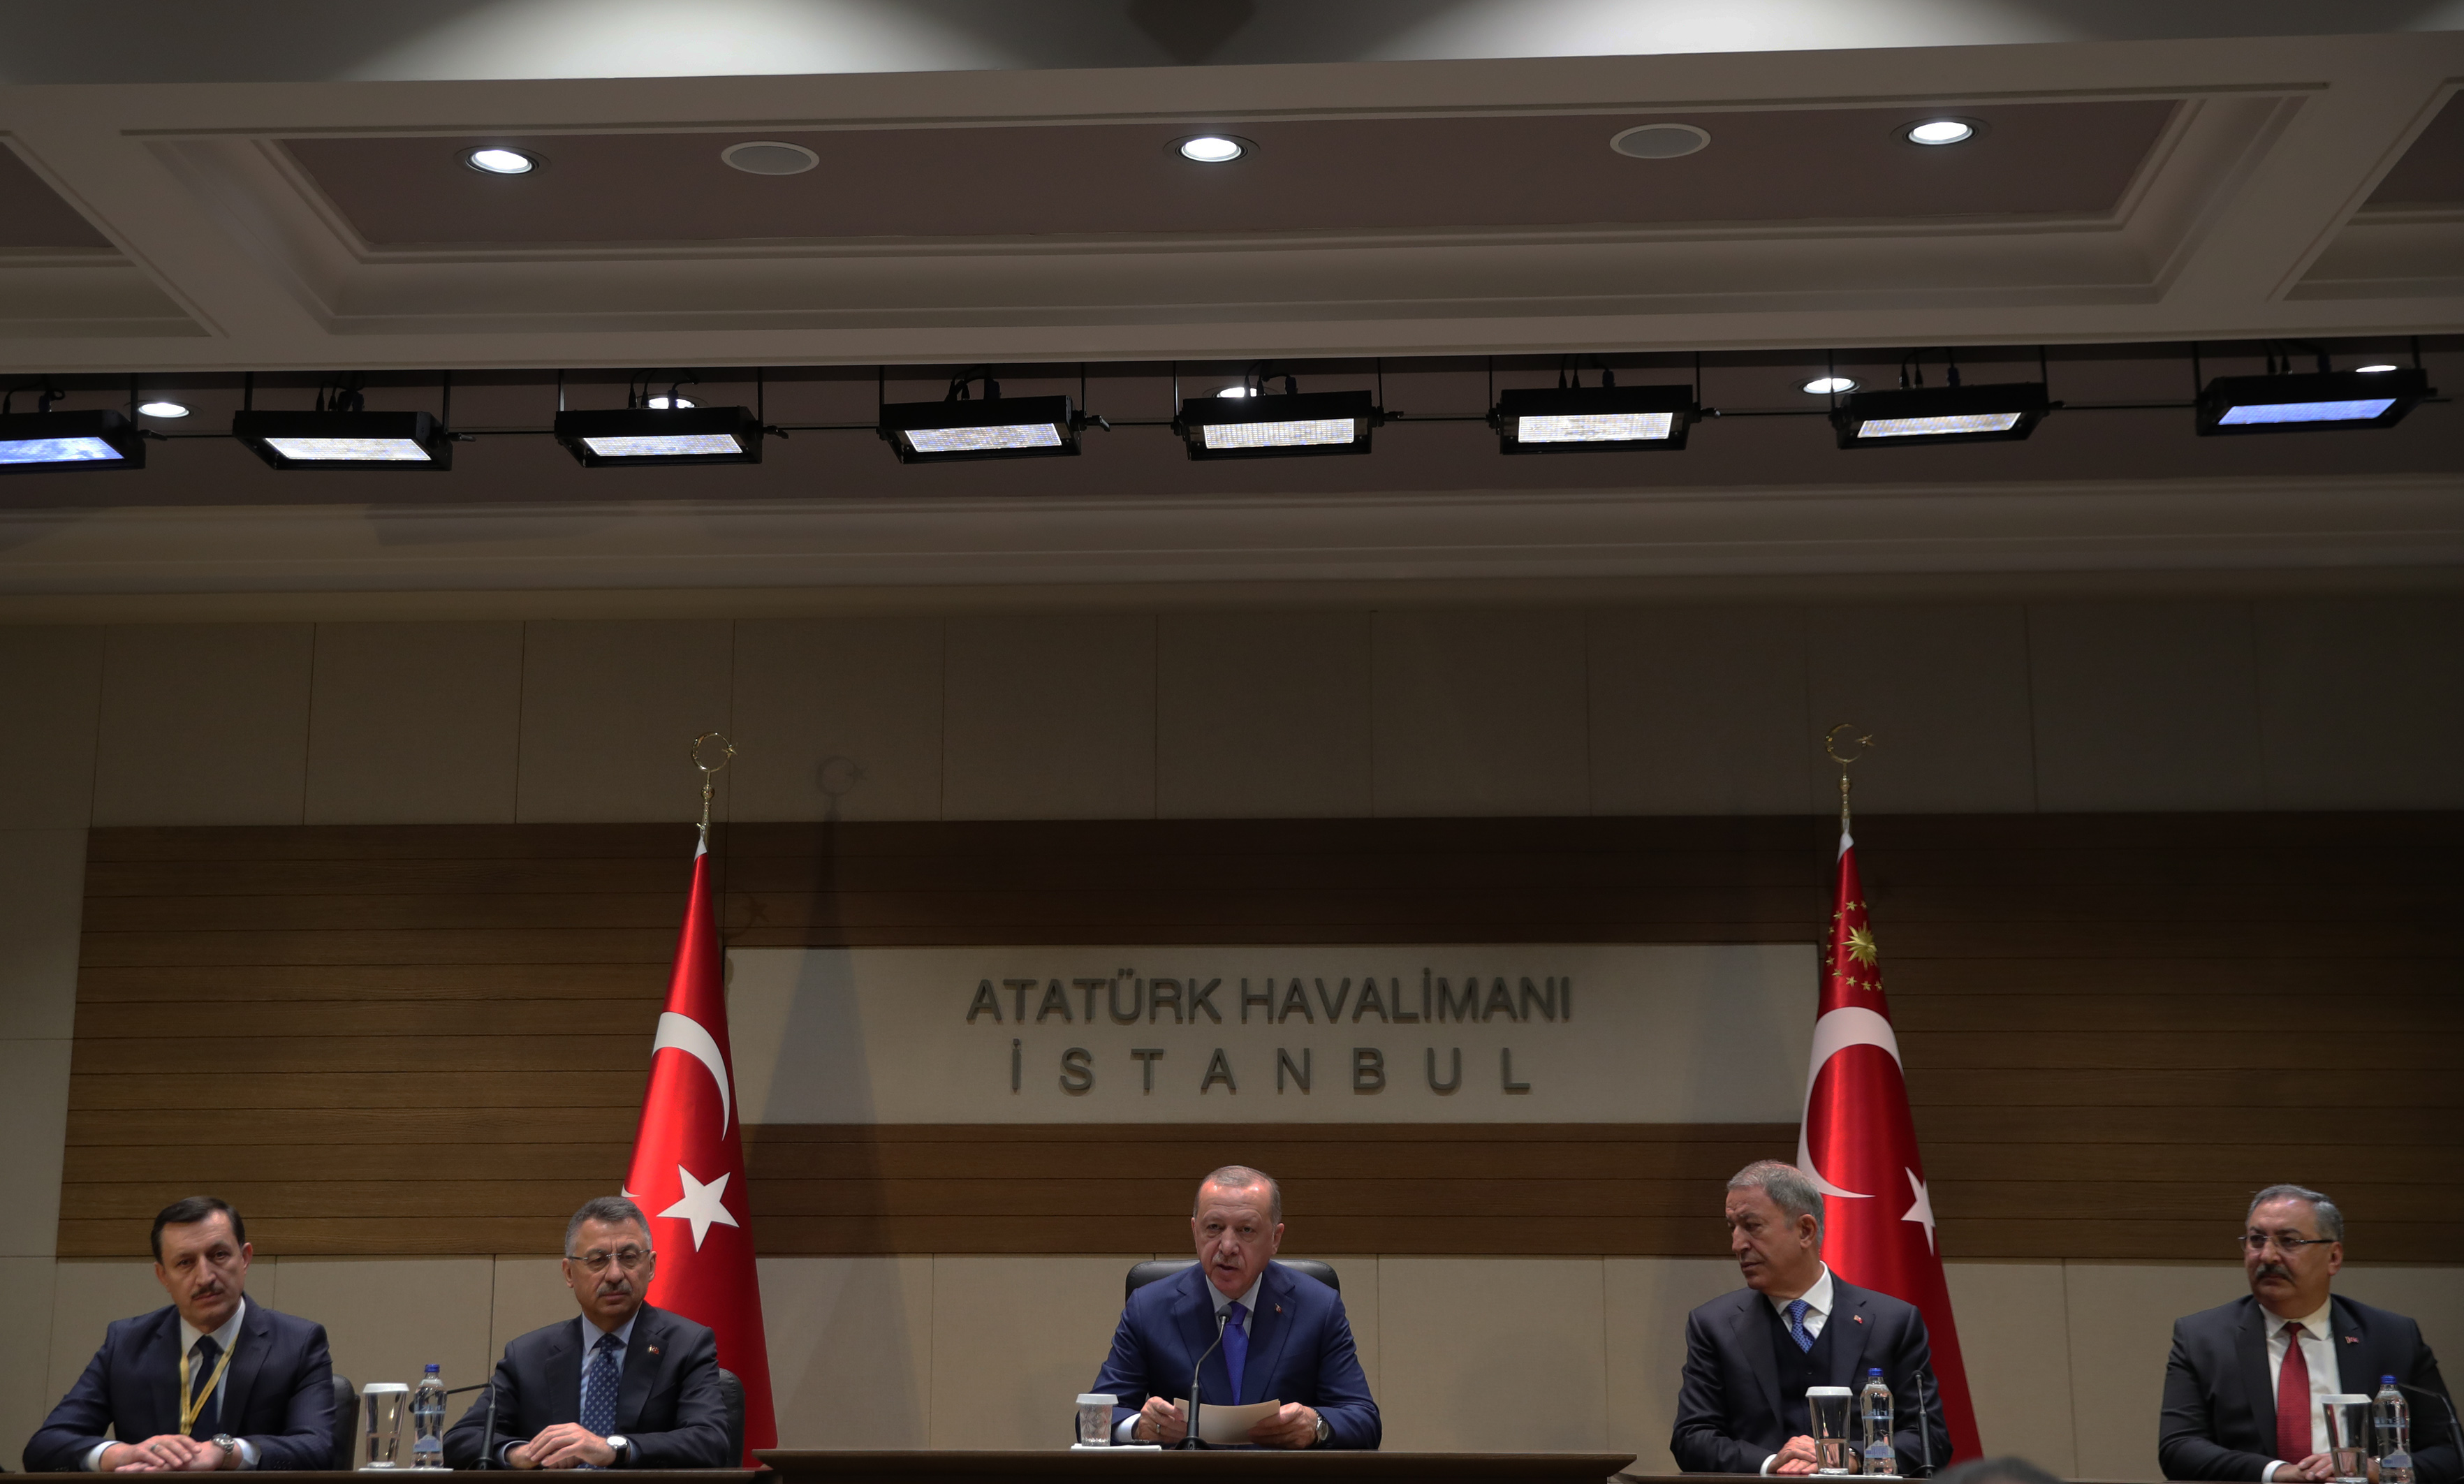 President Erdoğan addresses media before leaving for Berlin, where talks on Libya will take place